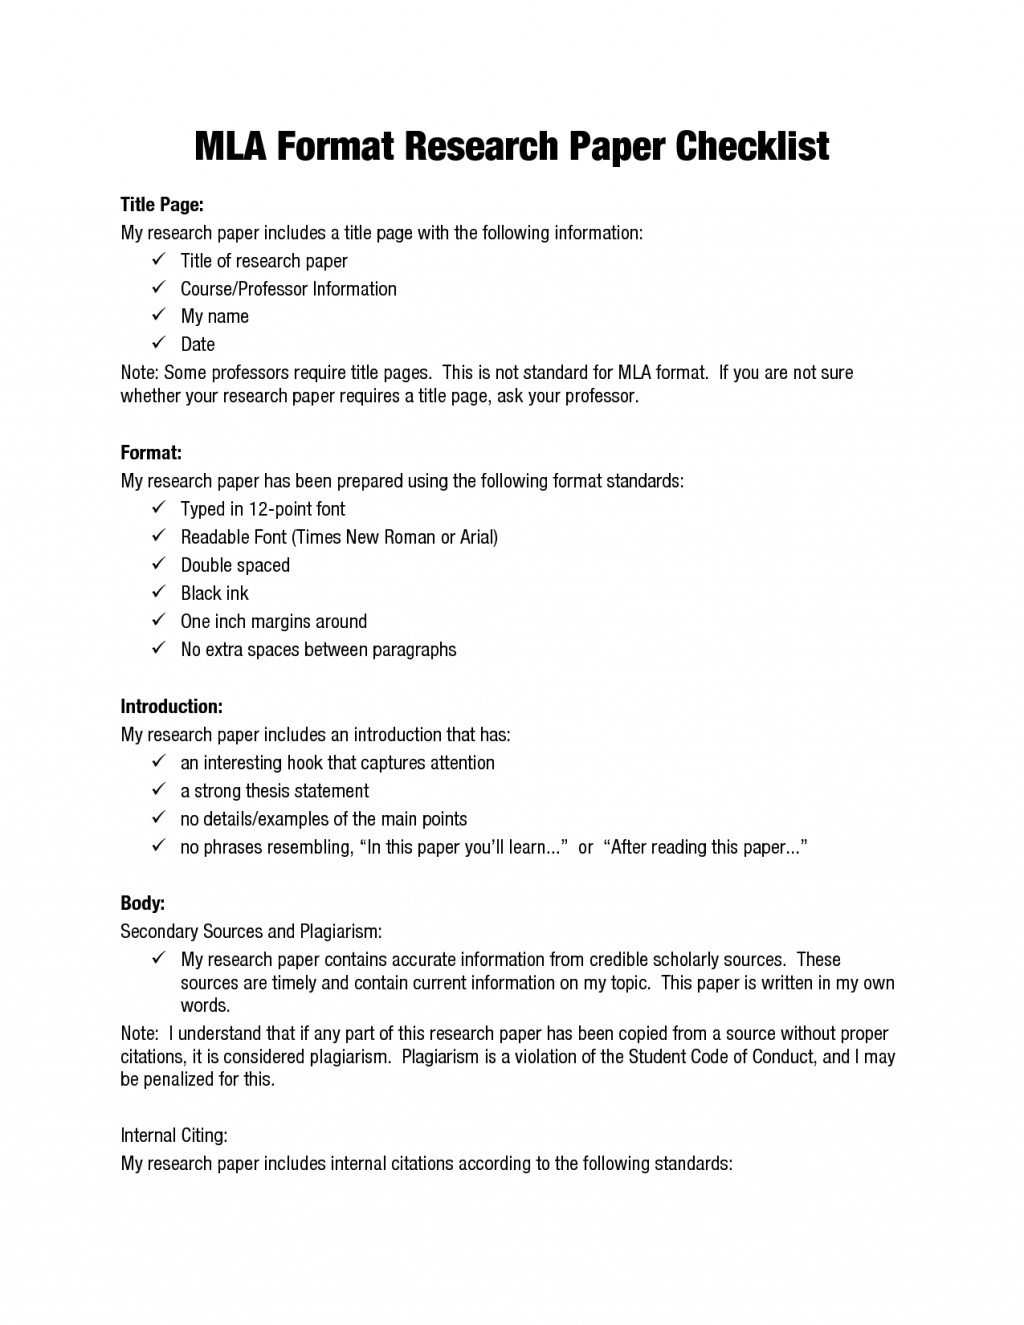 010 Apa Format Research Paper Example Awesome Outline 2015 Citation Large